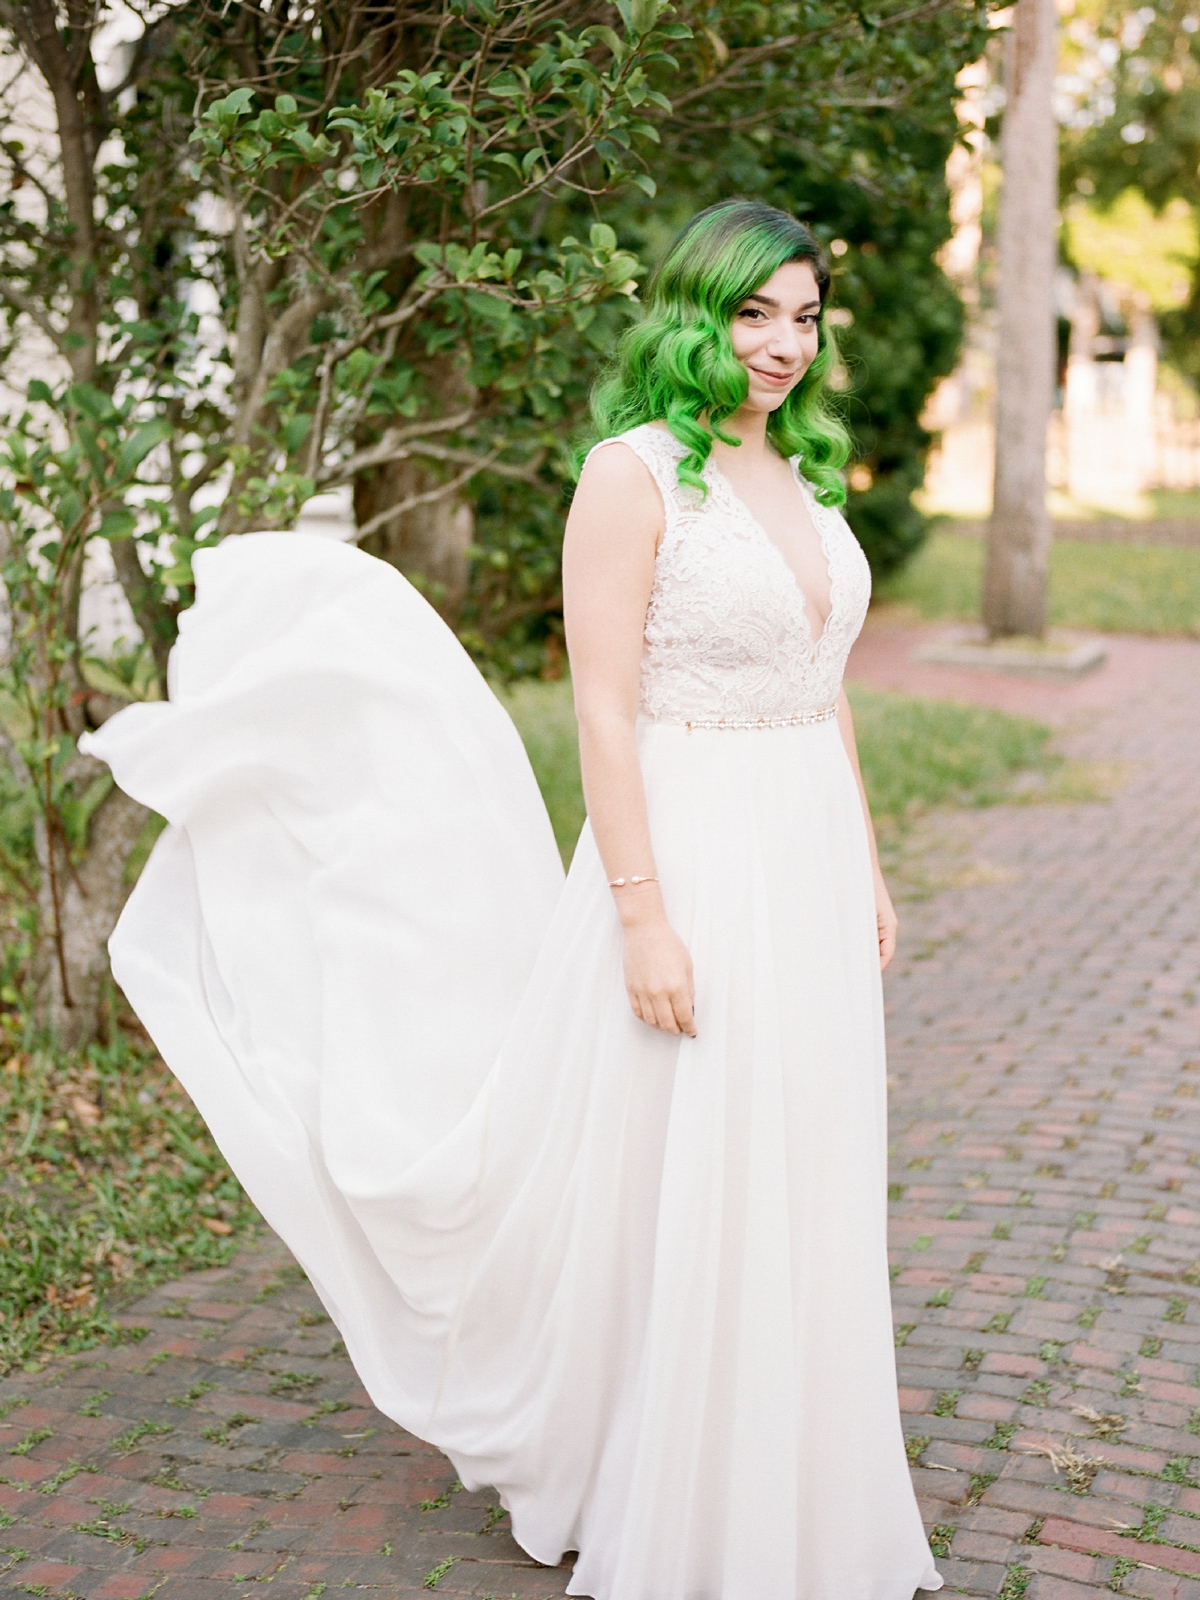 lightner_museum_st_augustine_wedding_photographer_shannon_griffin_0019.jpg